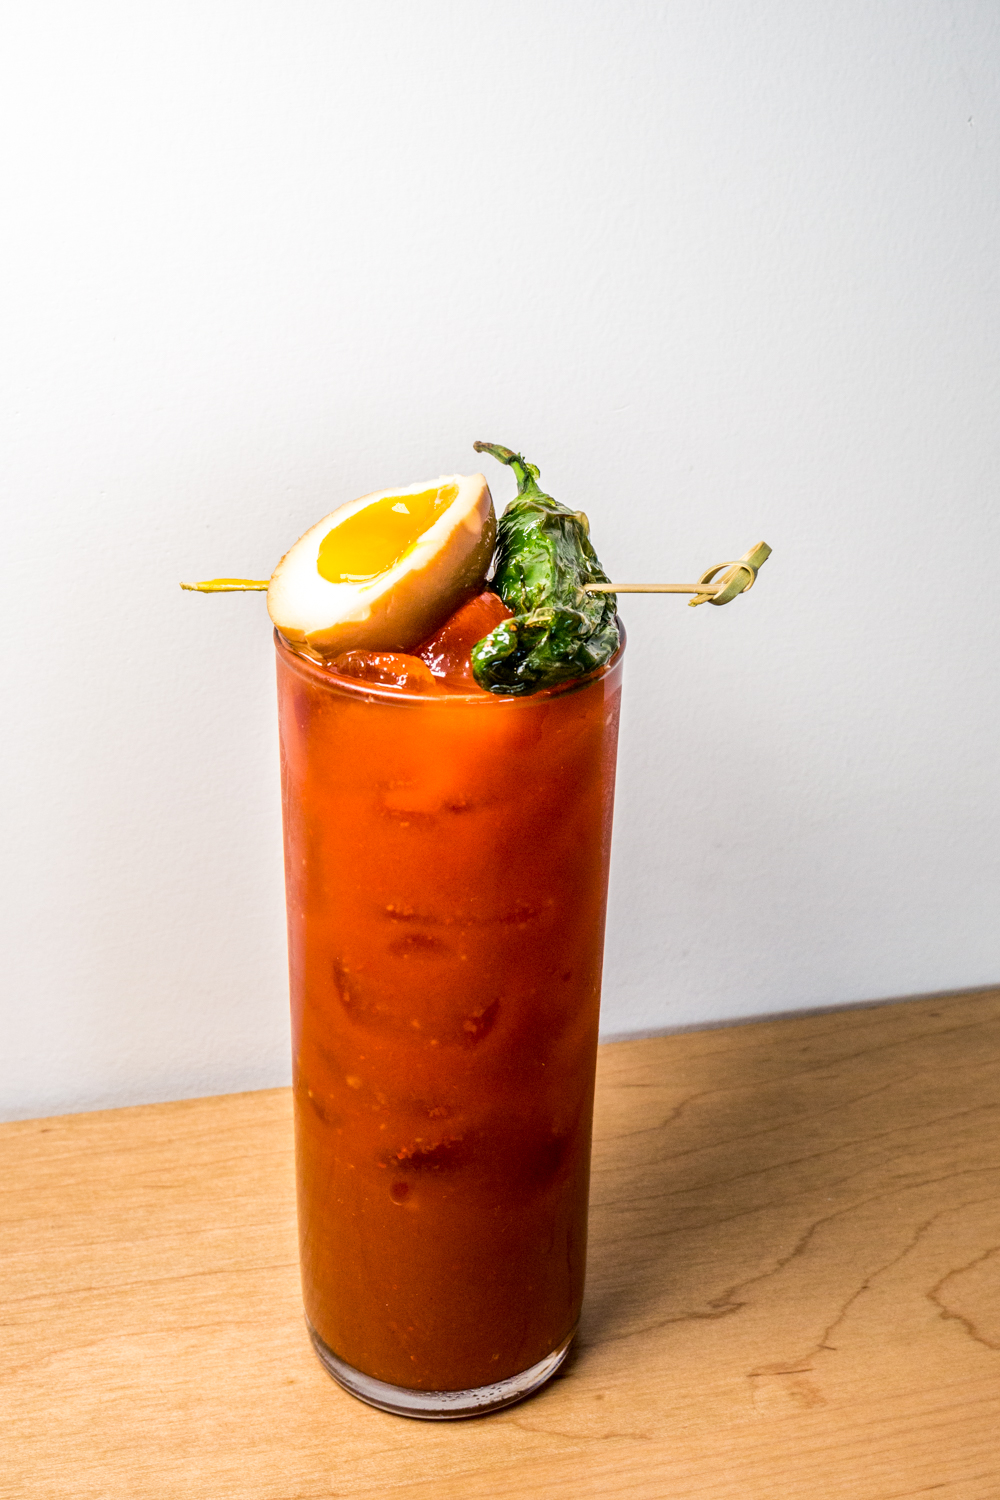 Kimchi Bloody Mary with shishito pepper and tea-marinated egg / Image: Catherine Viox{ }// Published: 10.21.19